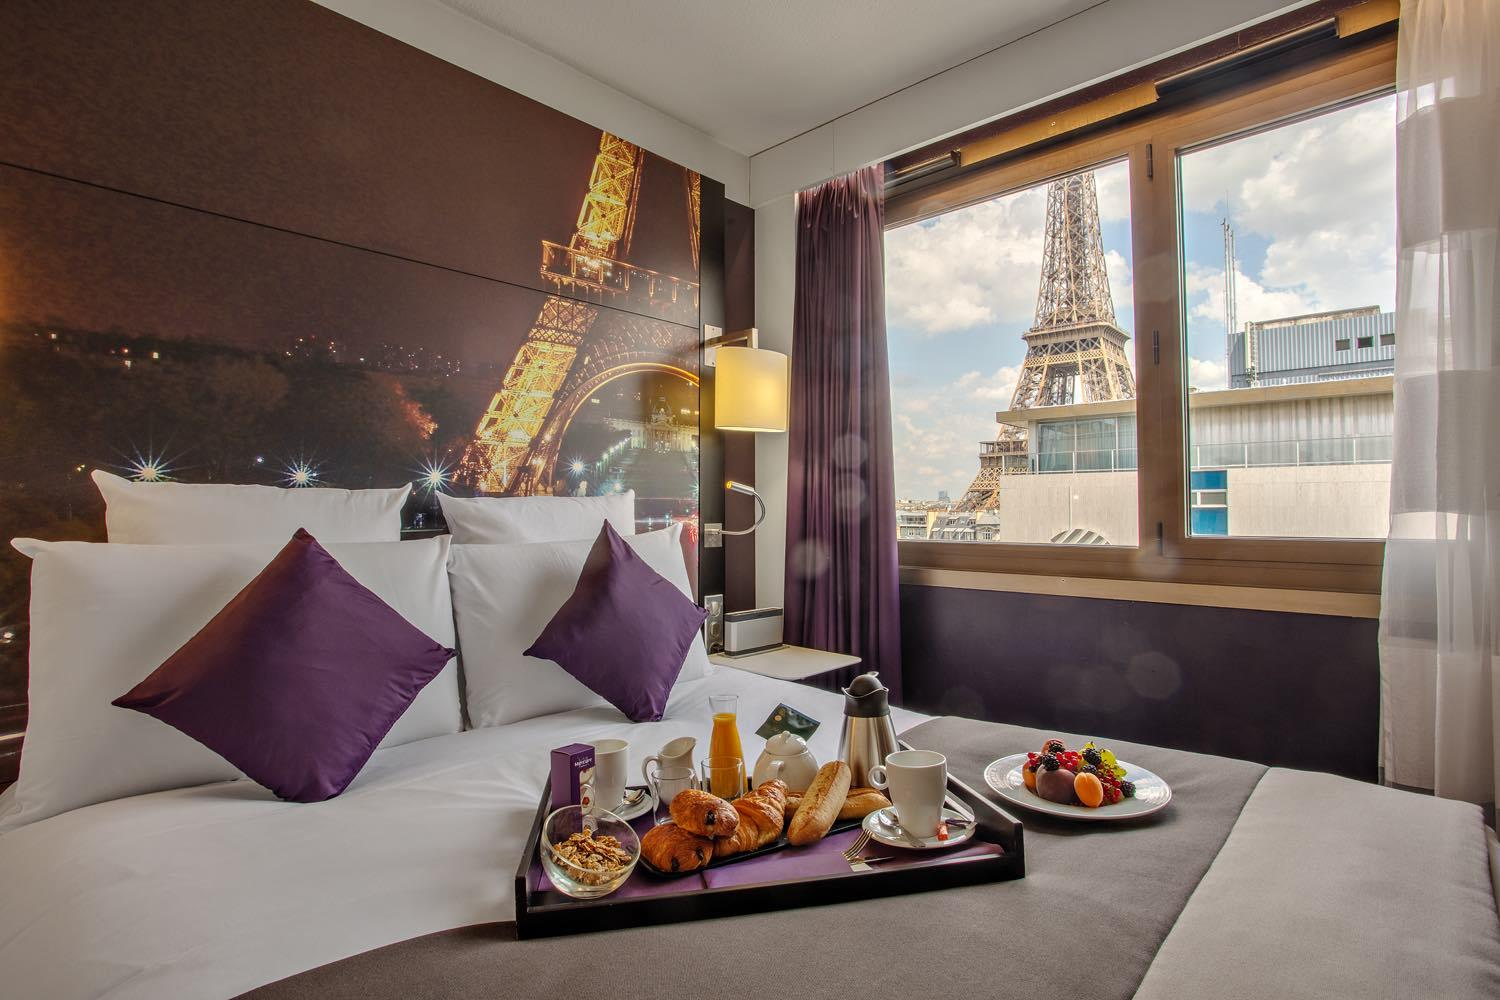 Mercure - Paris Hotels With Eiffel Tower View